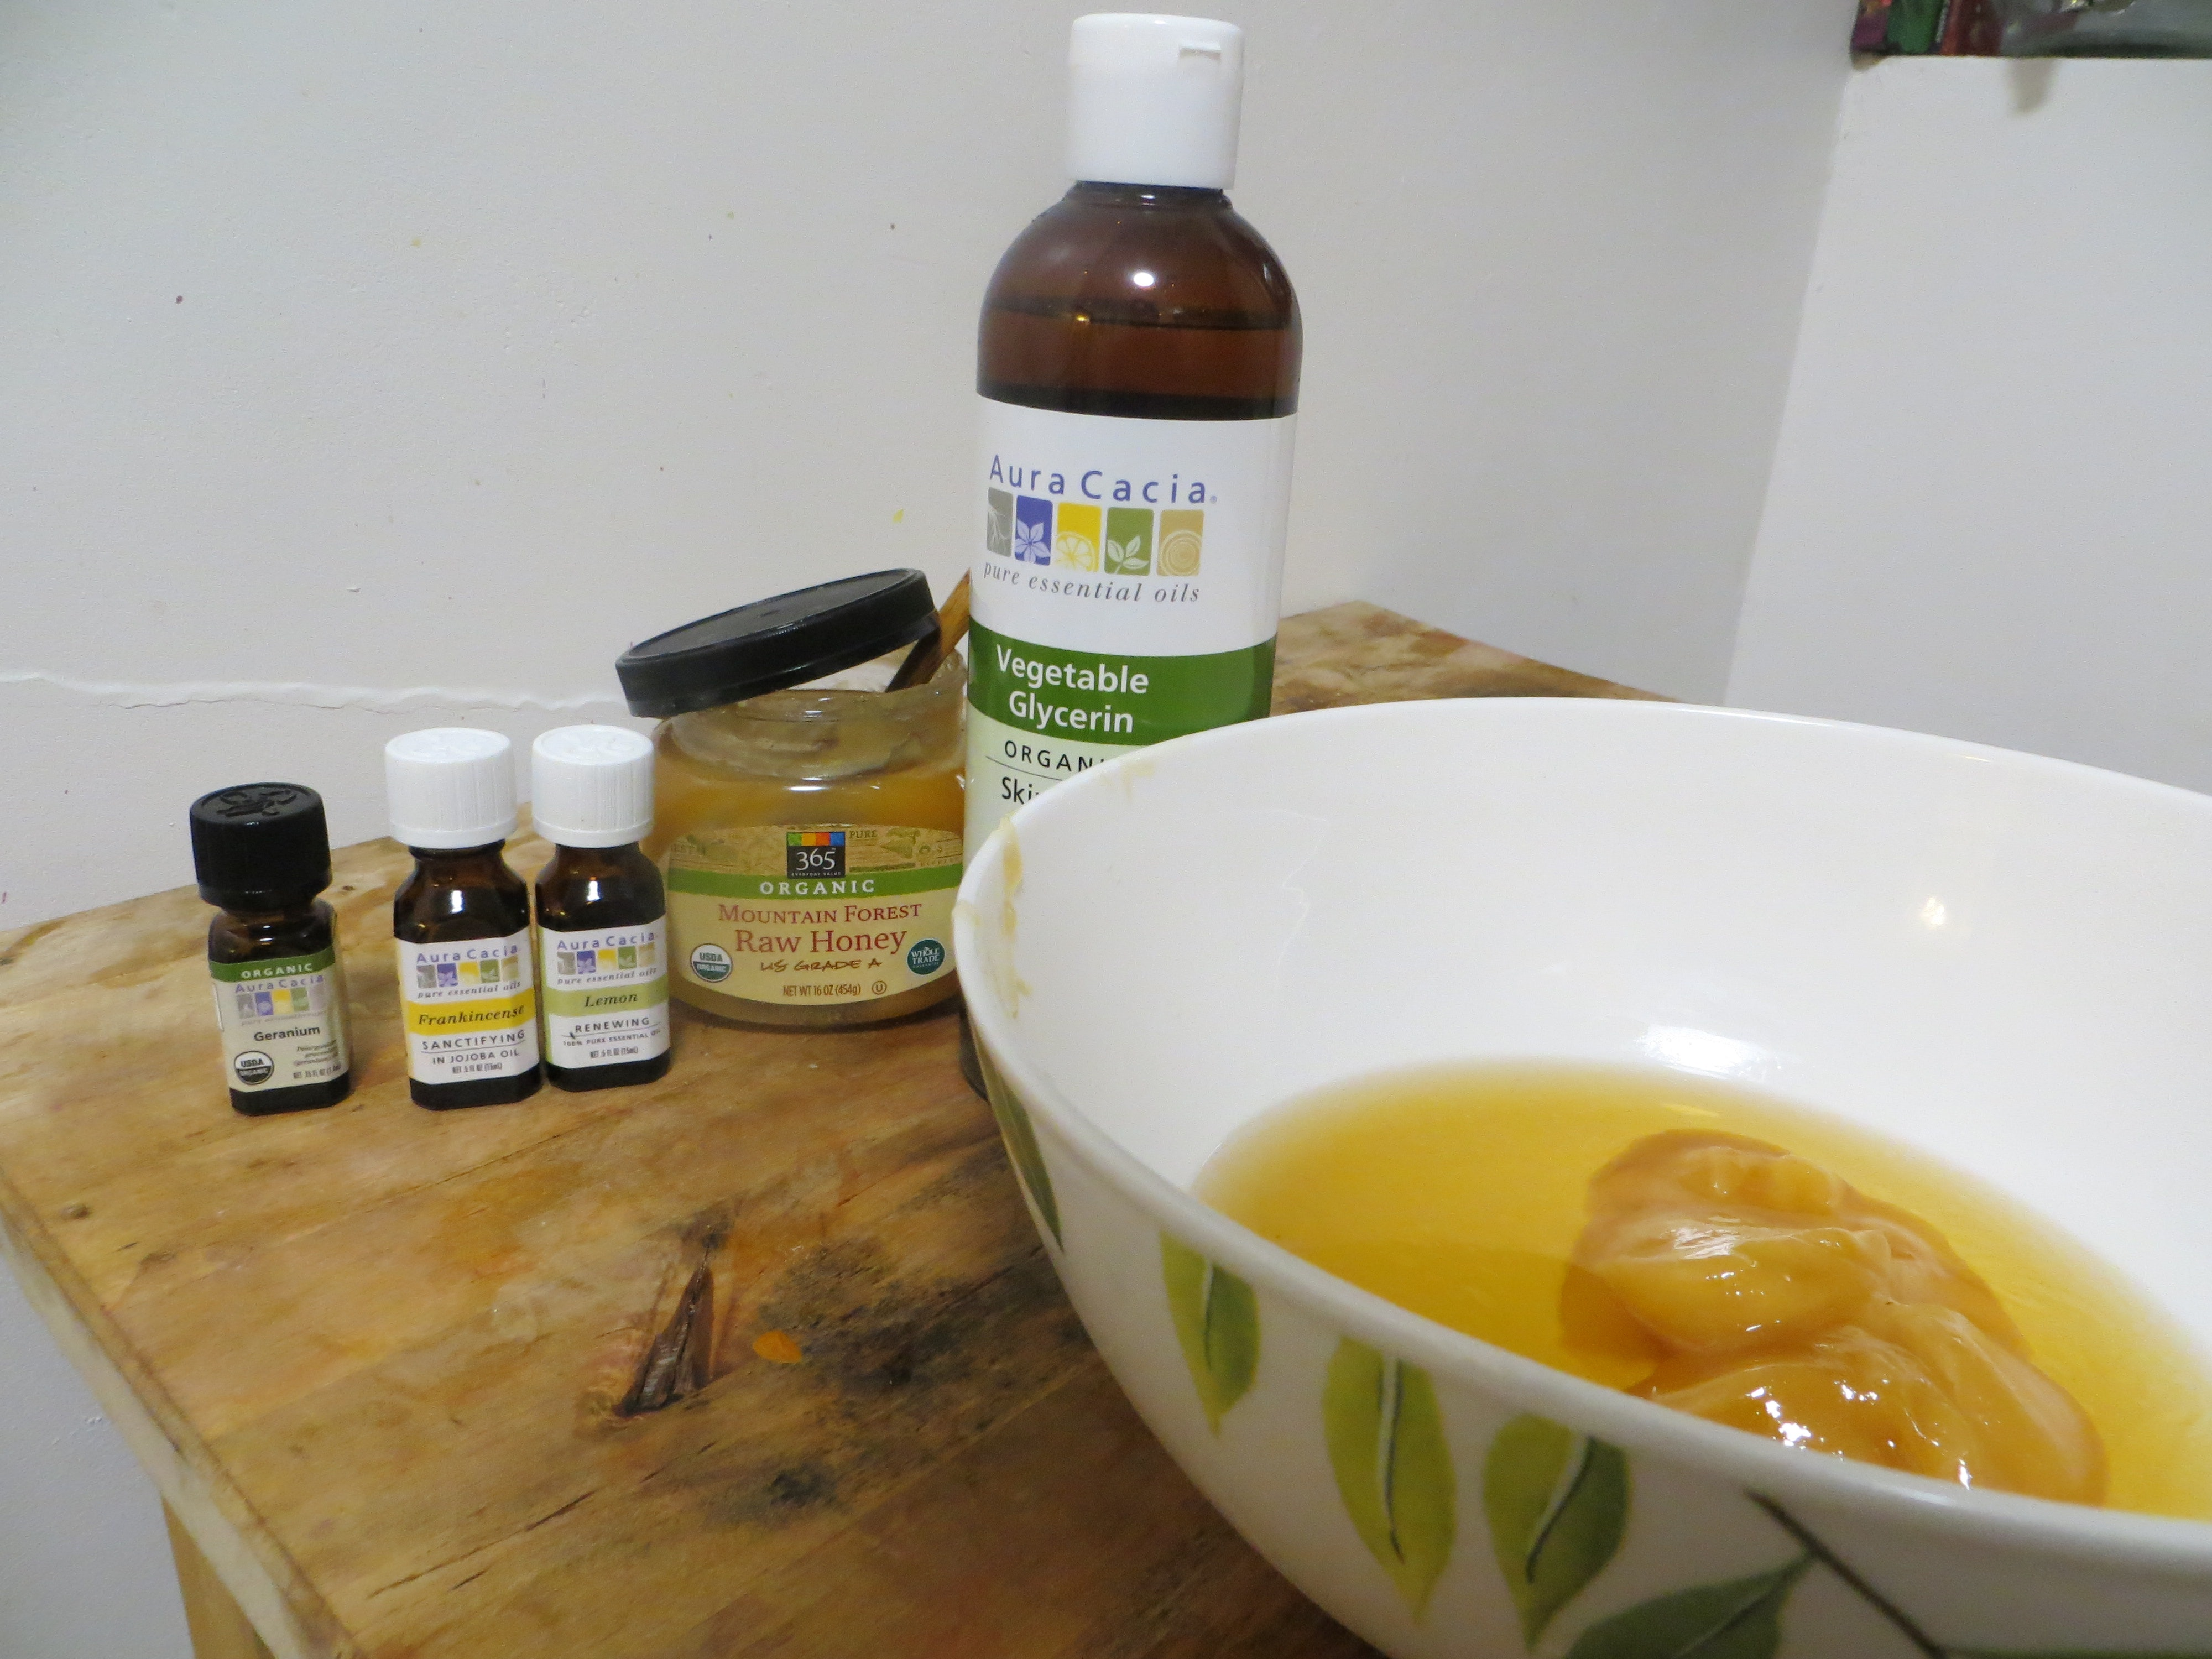 vegetable glycerin benefits for hair and skin that are